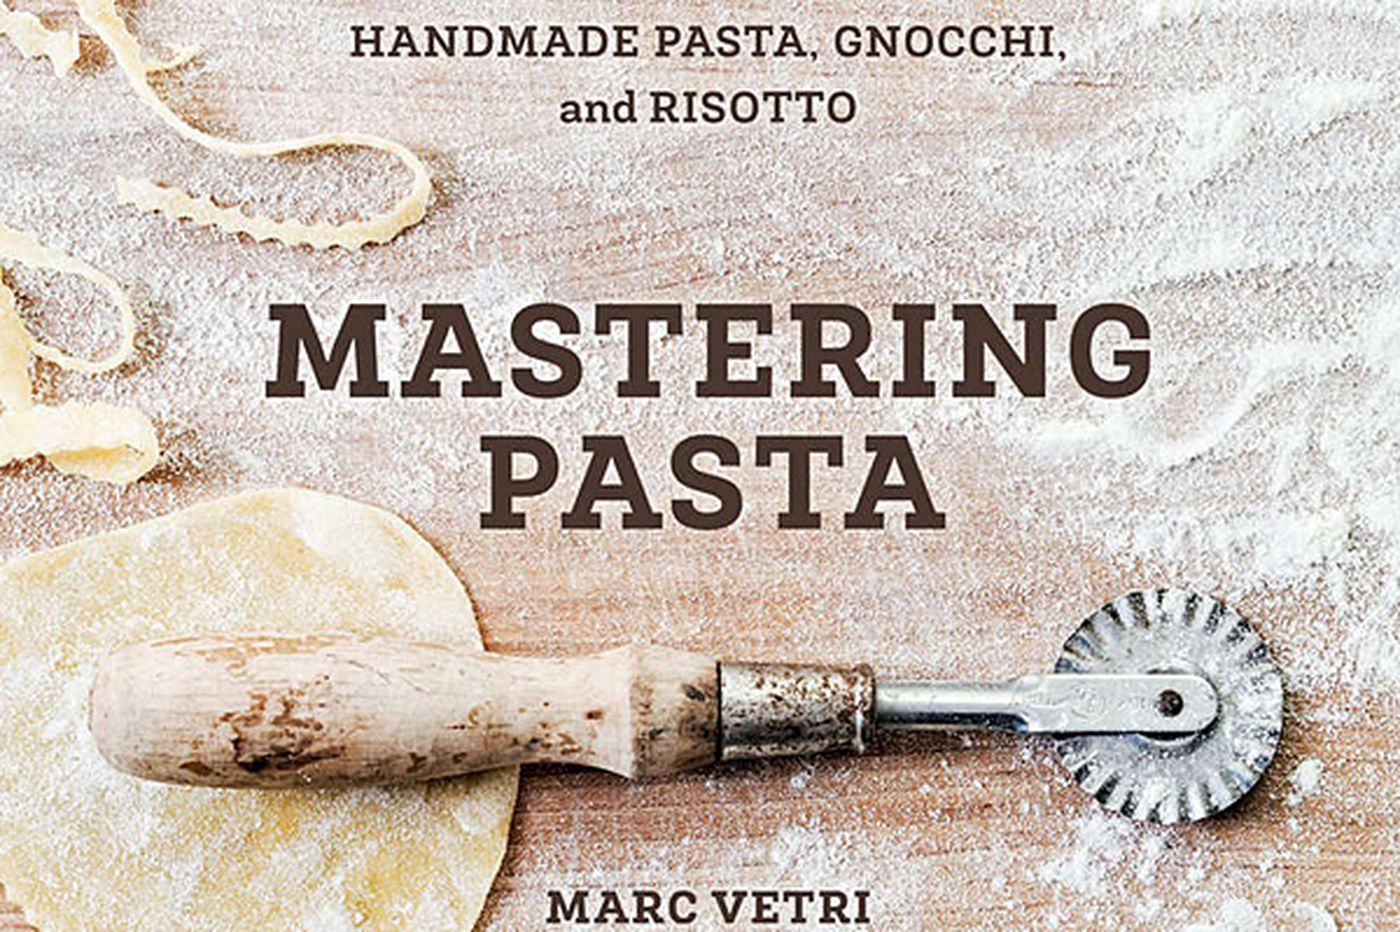 Pasta perfection: A chat with Marc Vetri